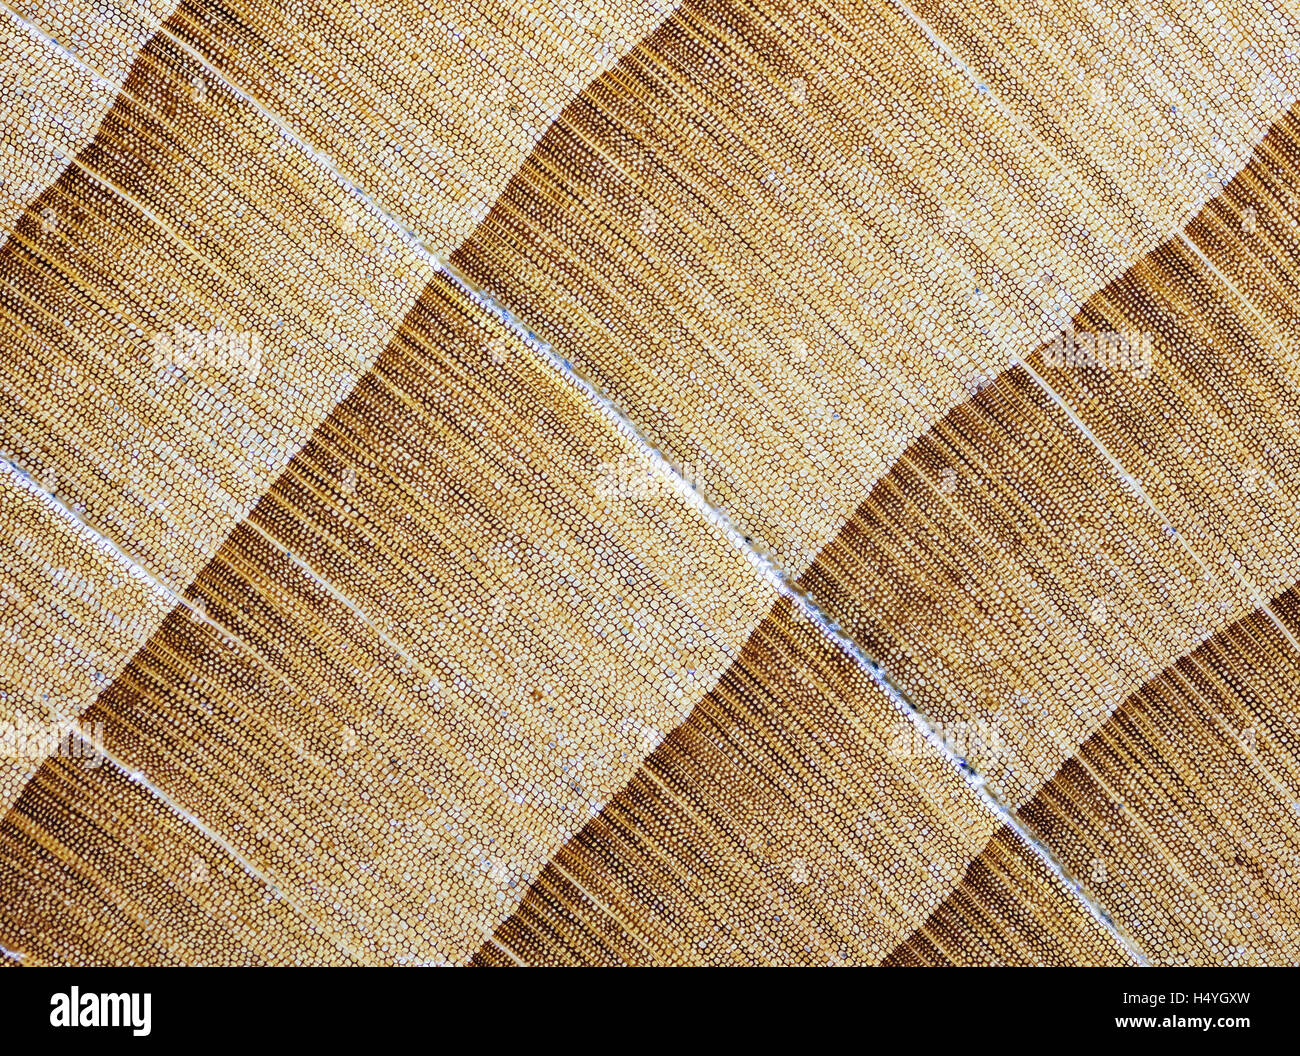 Yew, yew wood, polished, cross section of the trunk, photomicrograph, five times larger - Stock Image